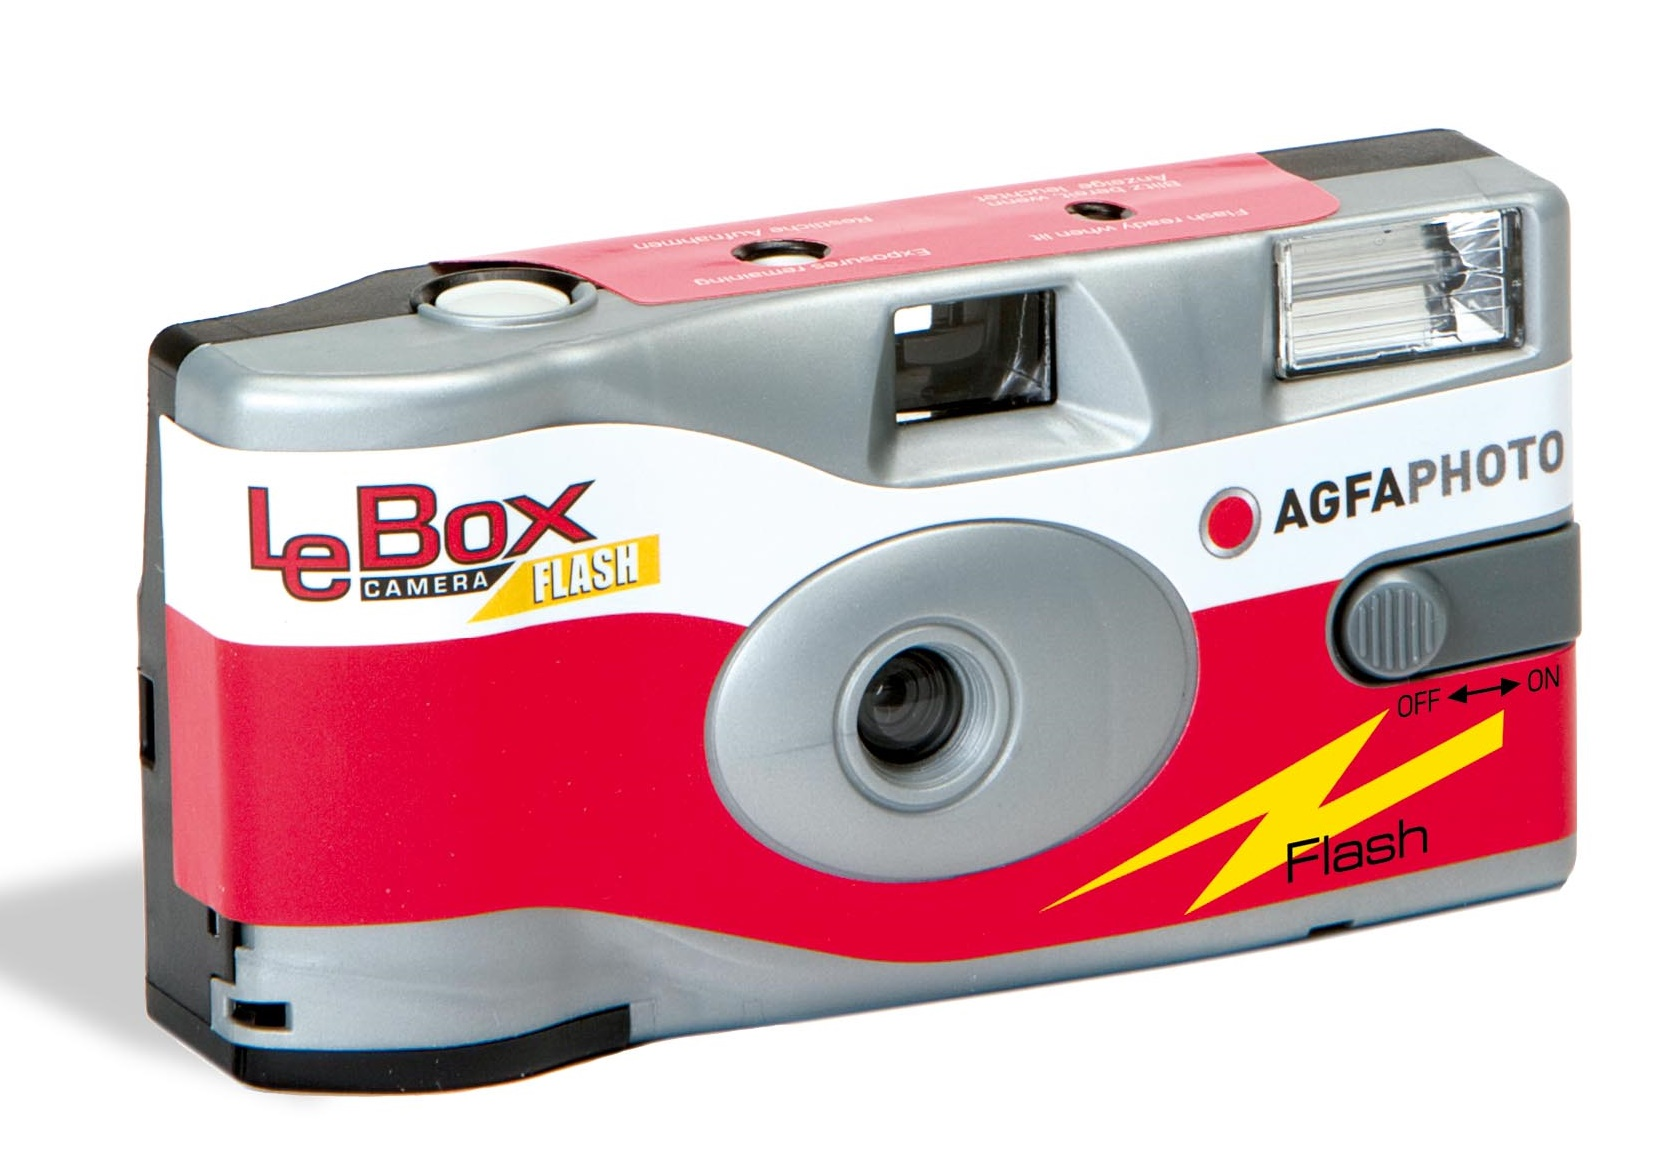 Item Agfa Lebox camera with flash and color film